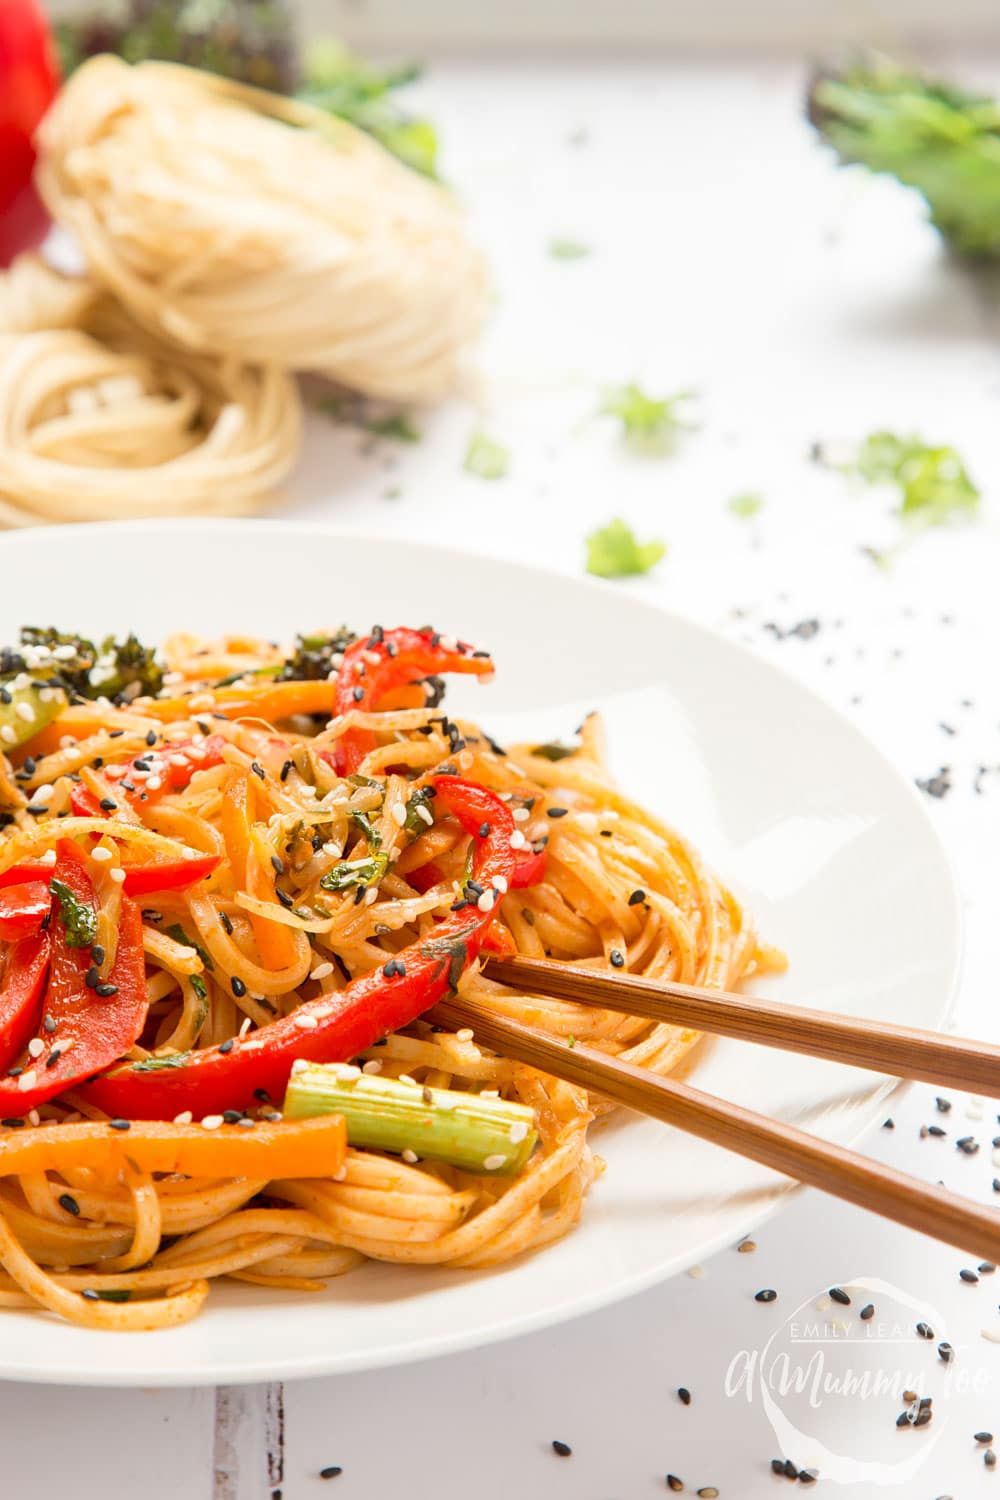 Tangy and tasty sweet and sour ketchup noodle stir fry